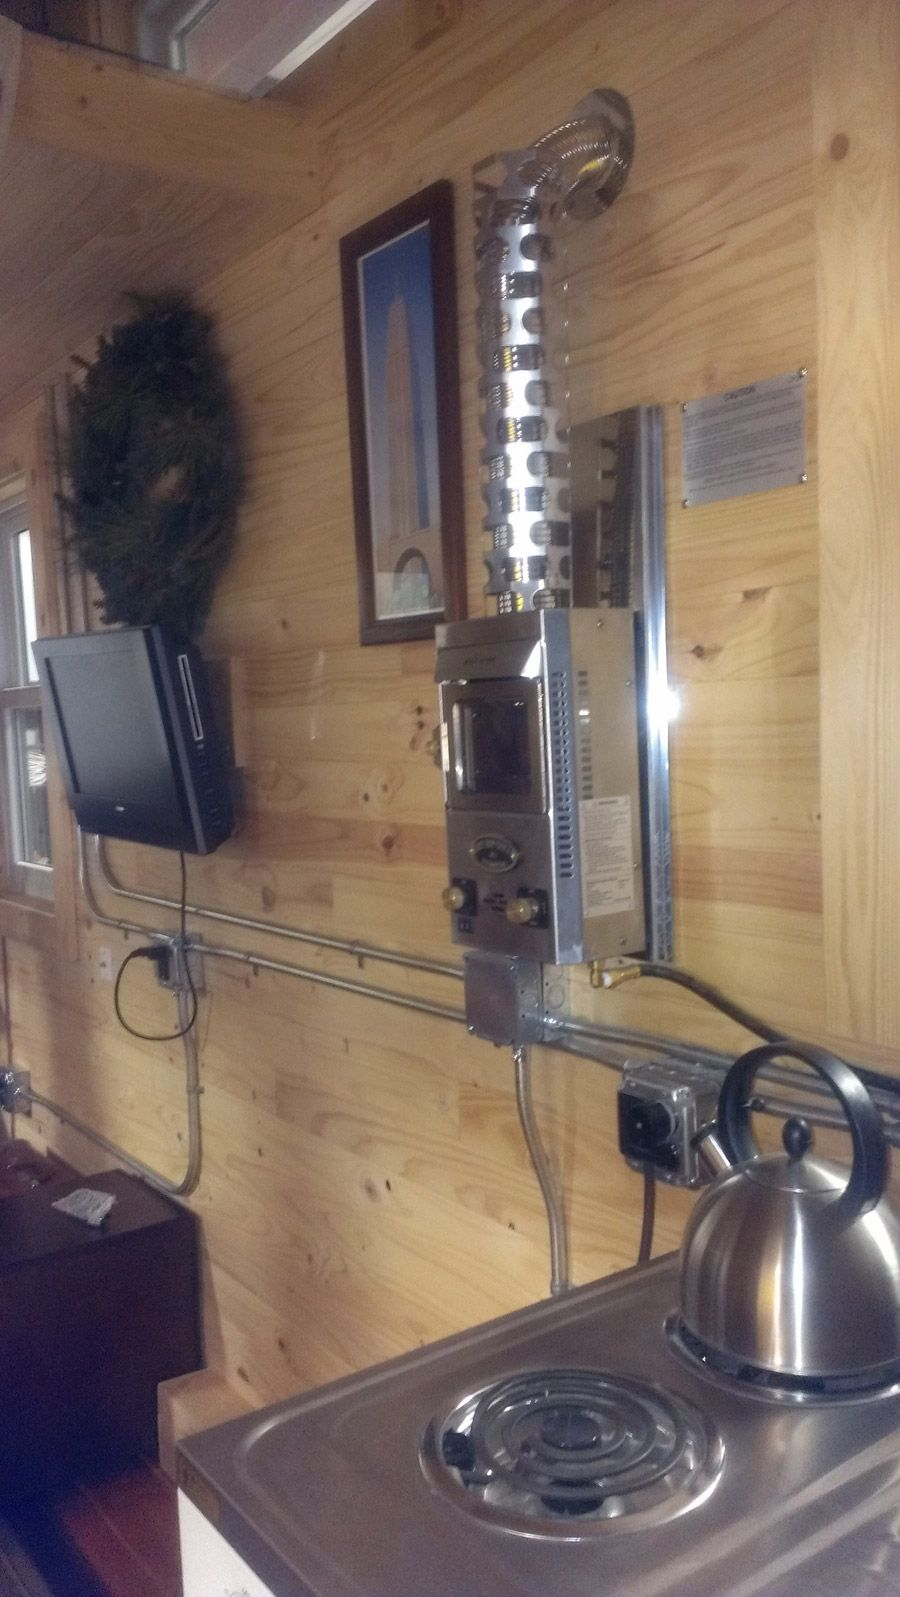 acadia tiny house 4 1 of 2 sip electrical wiring conduits for junction and outlet boxes  [ 900 x 1597 Pixel ]